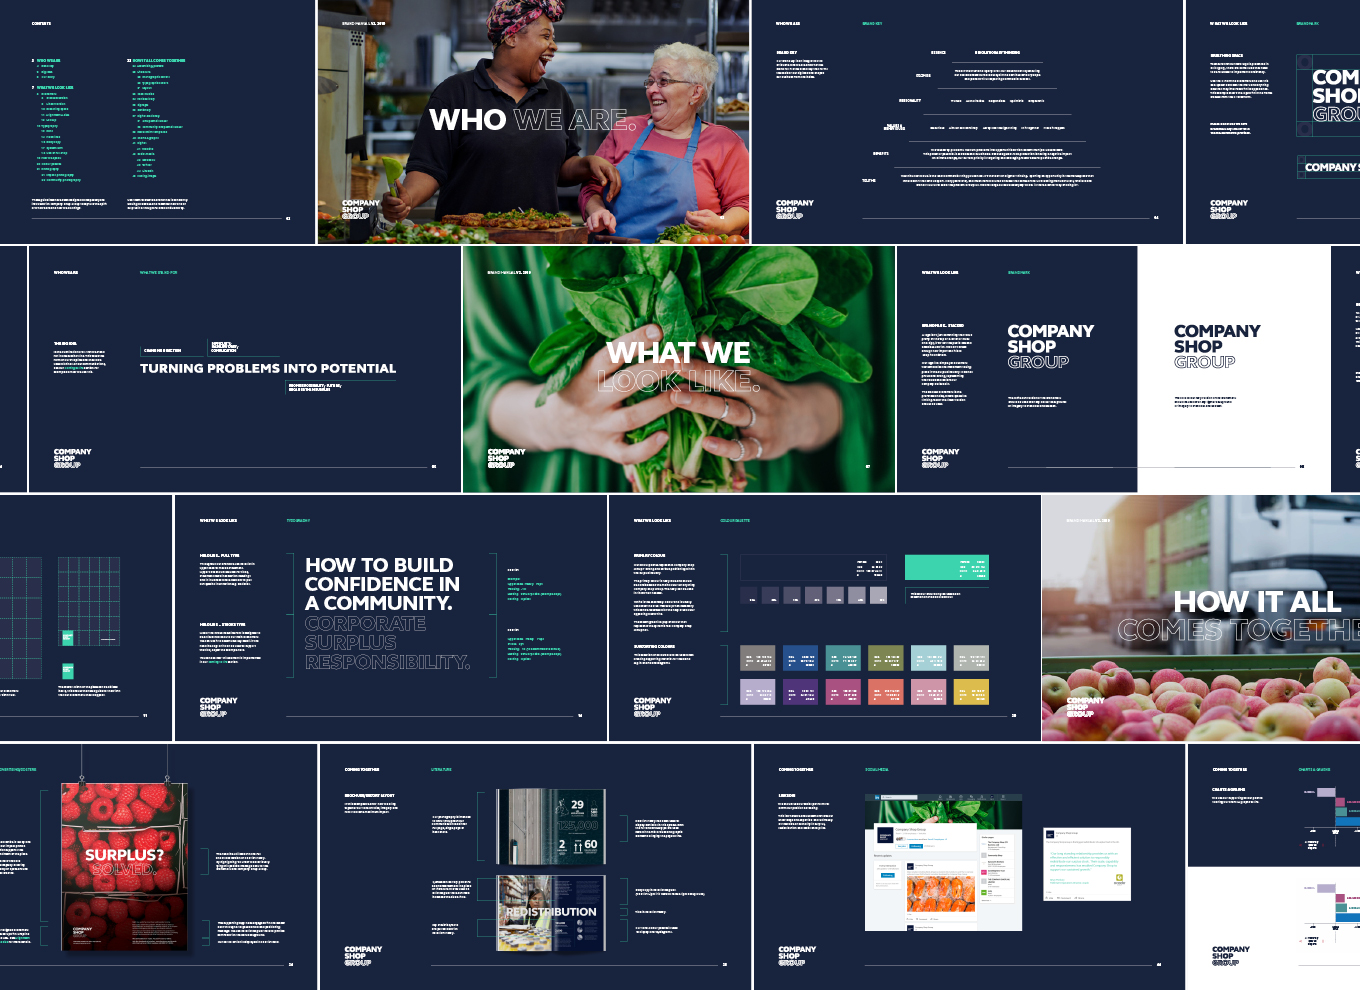 Company Shop Group Brand Guidelines